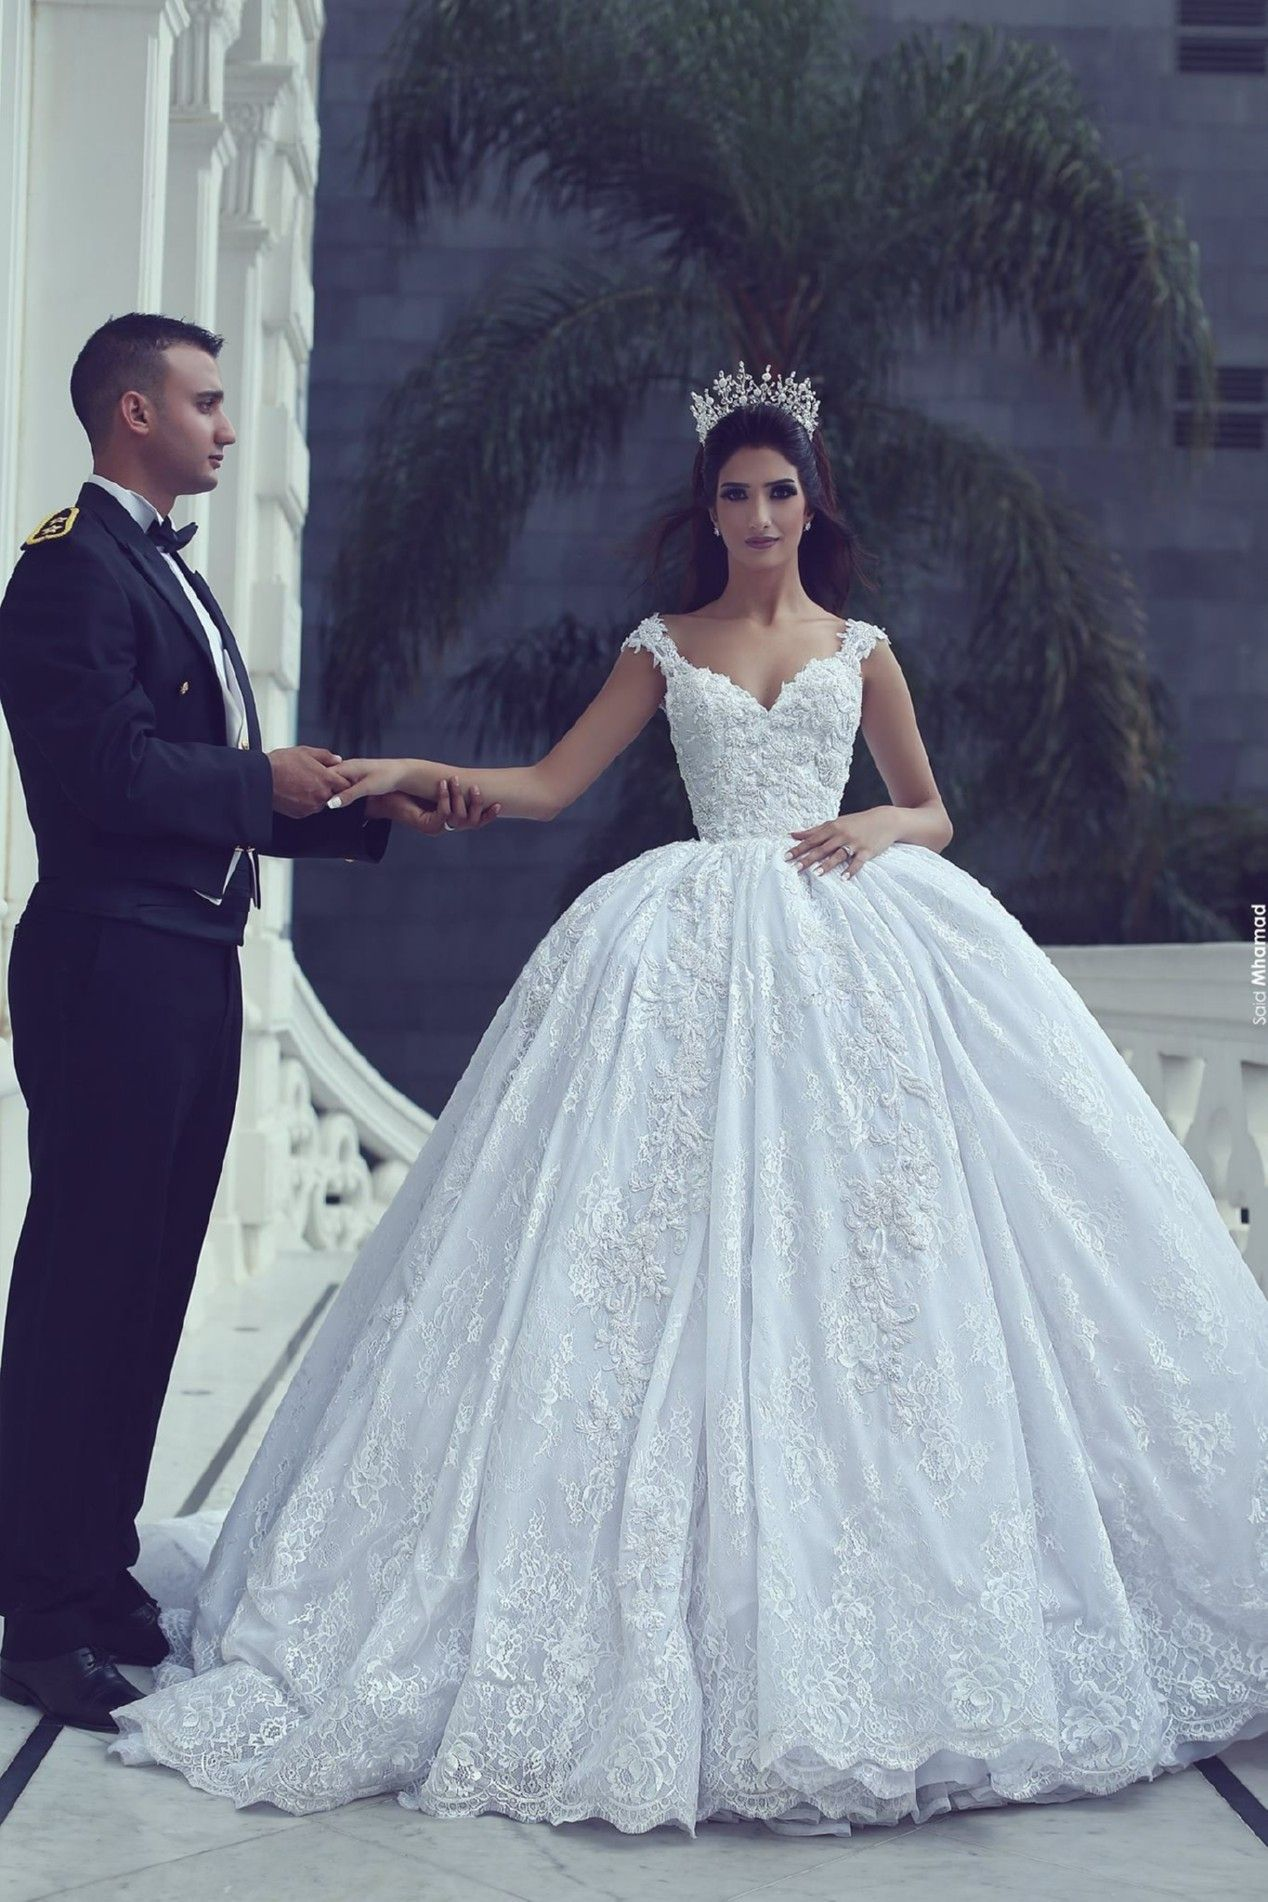 55 Breathtaking Disney Princess Wedding Dress to Fullfill